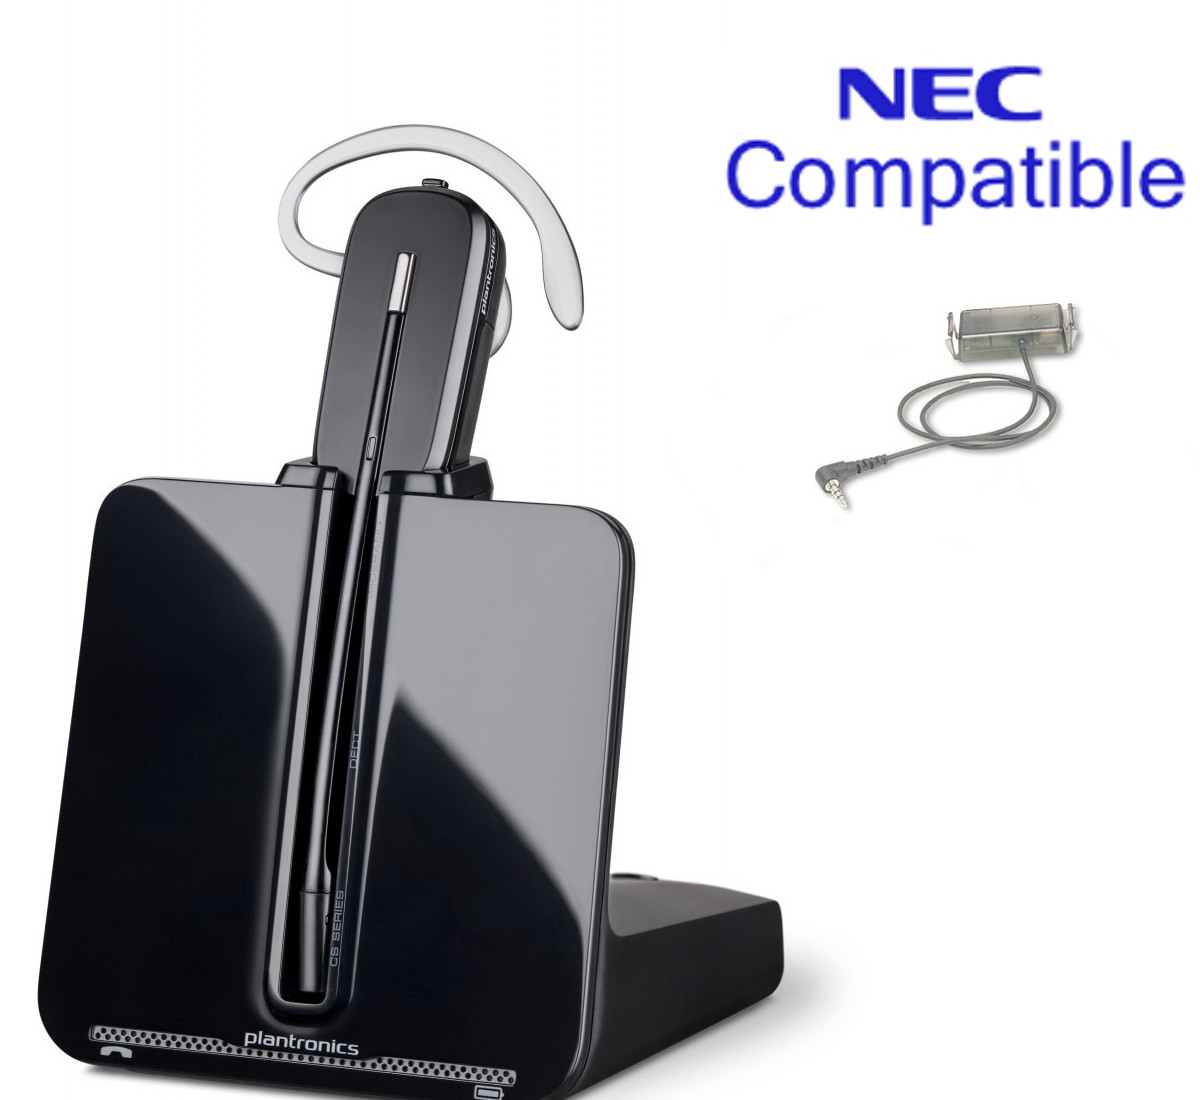 cs540_nec_compatible_sl1100_dsx34b_bundle__90516.1428386660.1280.1280?c=2 nec compatible plantronics cordless headset bundle cs540 ehs with nec sl1100 wiring diagram at fashall.co